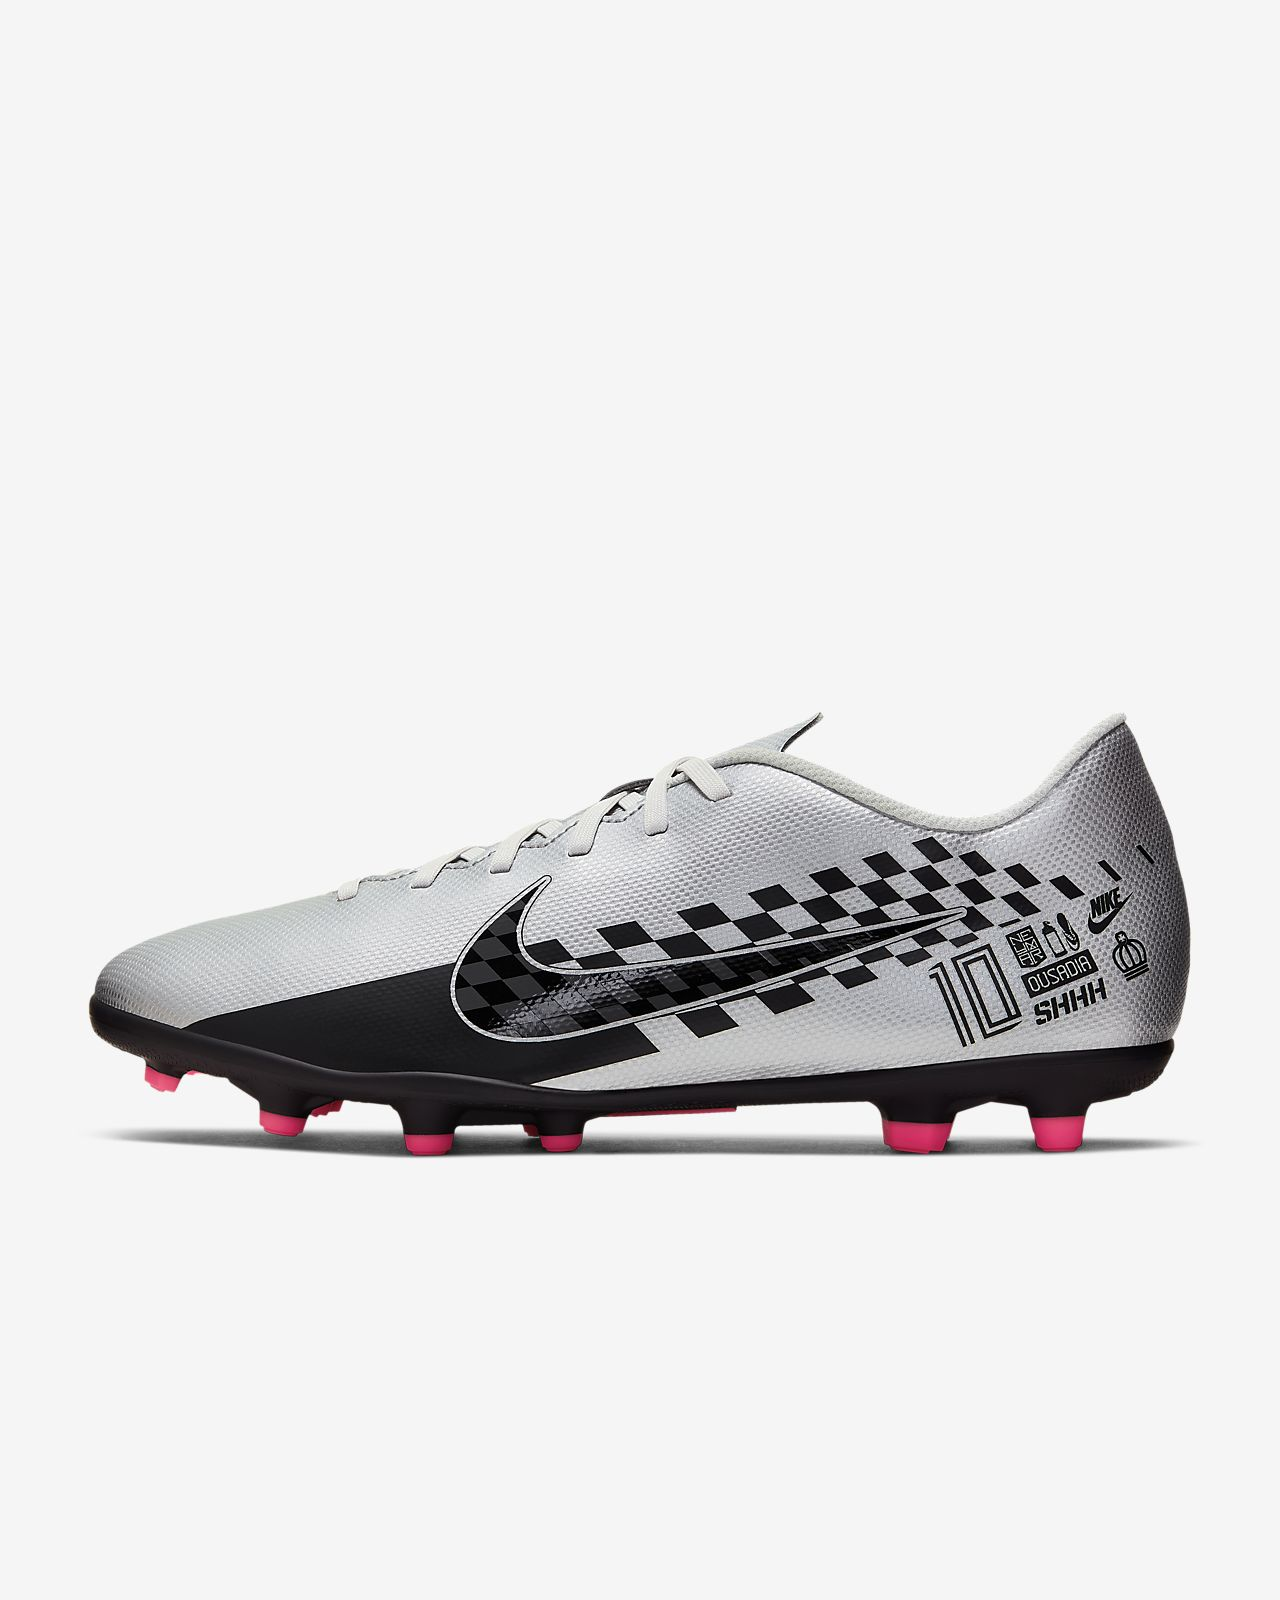 Nike Mercurial Vapor 13 Club Neymar Jr. MG Multi-Ground Football Boot